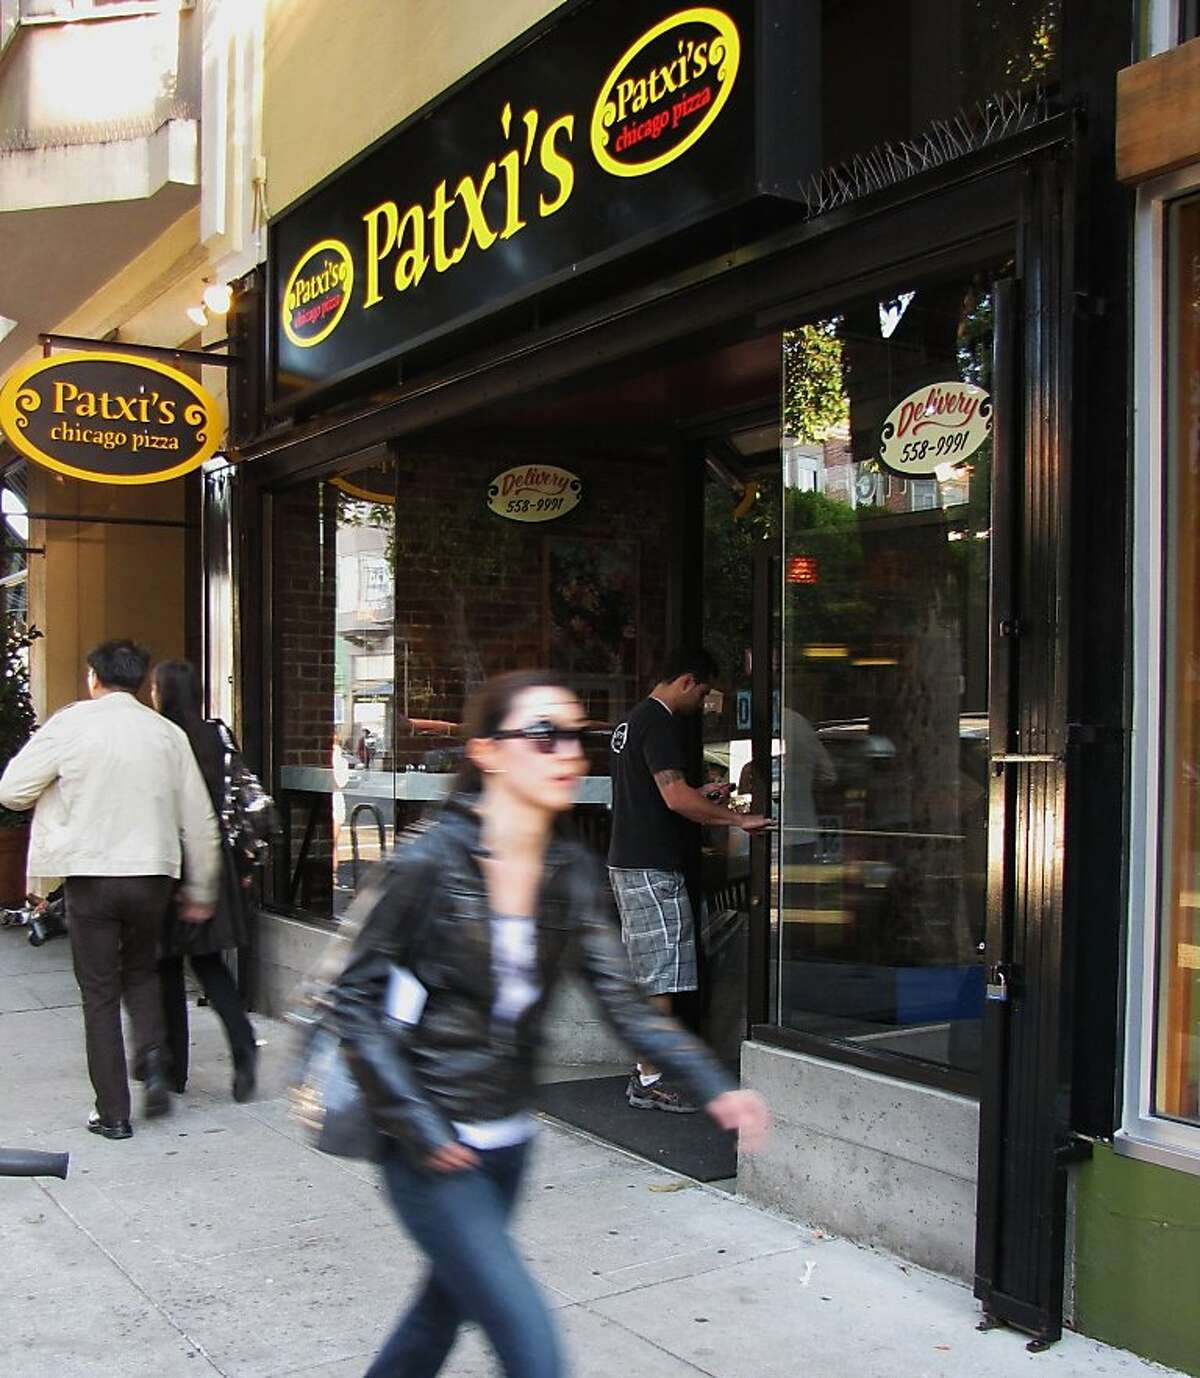 Patxi's Chicago Pizza is paying back 115 current and past employees - who were denied medical coverage from 2009 to 2011 - a total of $205,000. Patxi's will also pay $15,000 in penalties to the city.